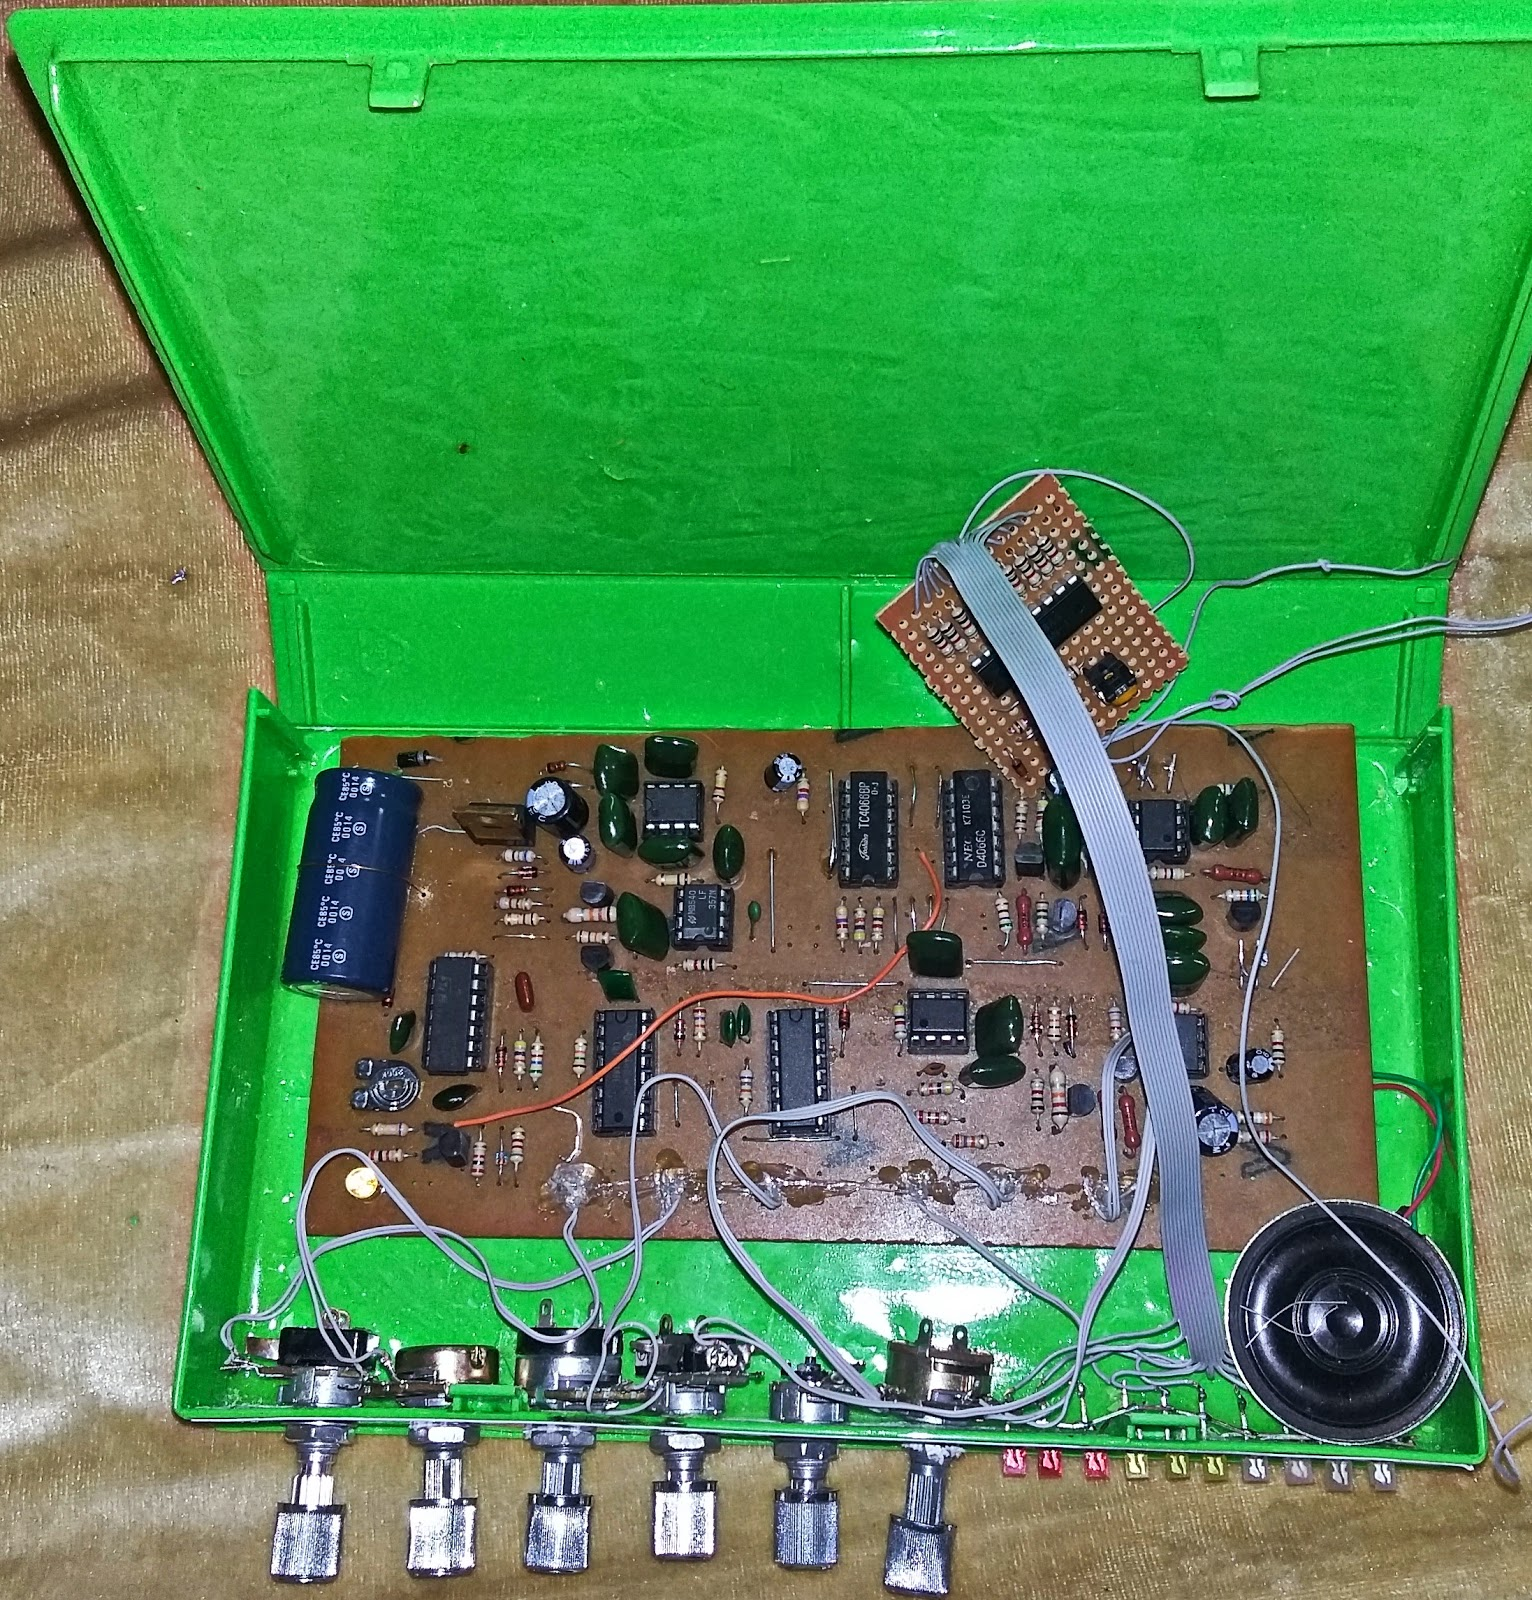 Bluetooth Fm Transmitter My Electronic Circuits Pics Photos Build Your Own Metal Detector Projects Kit Complete Available